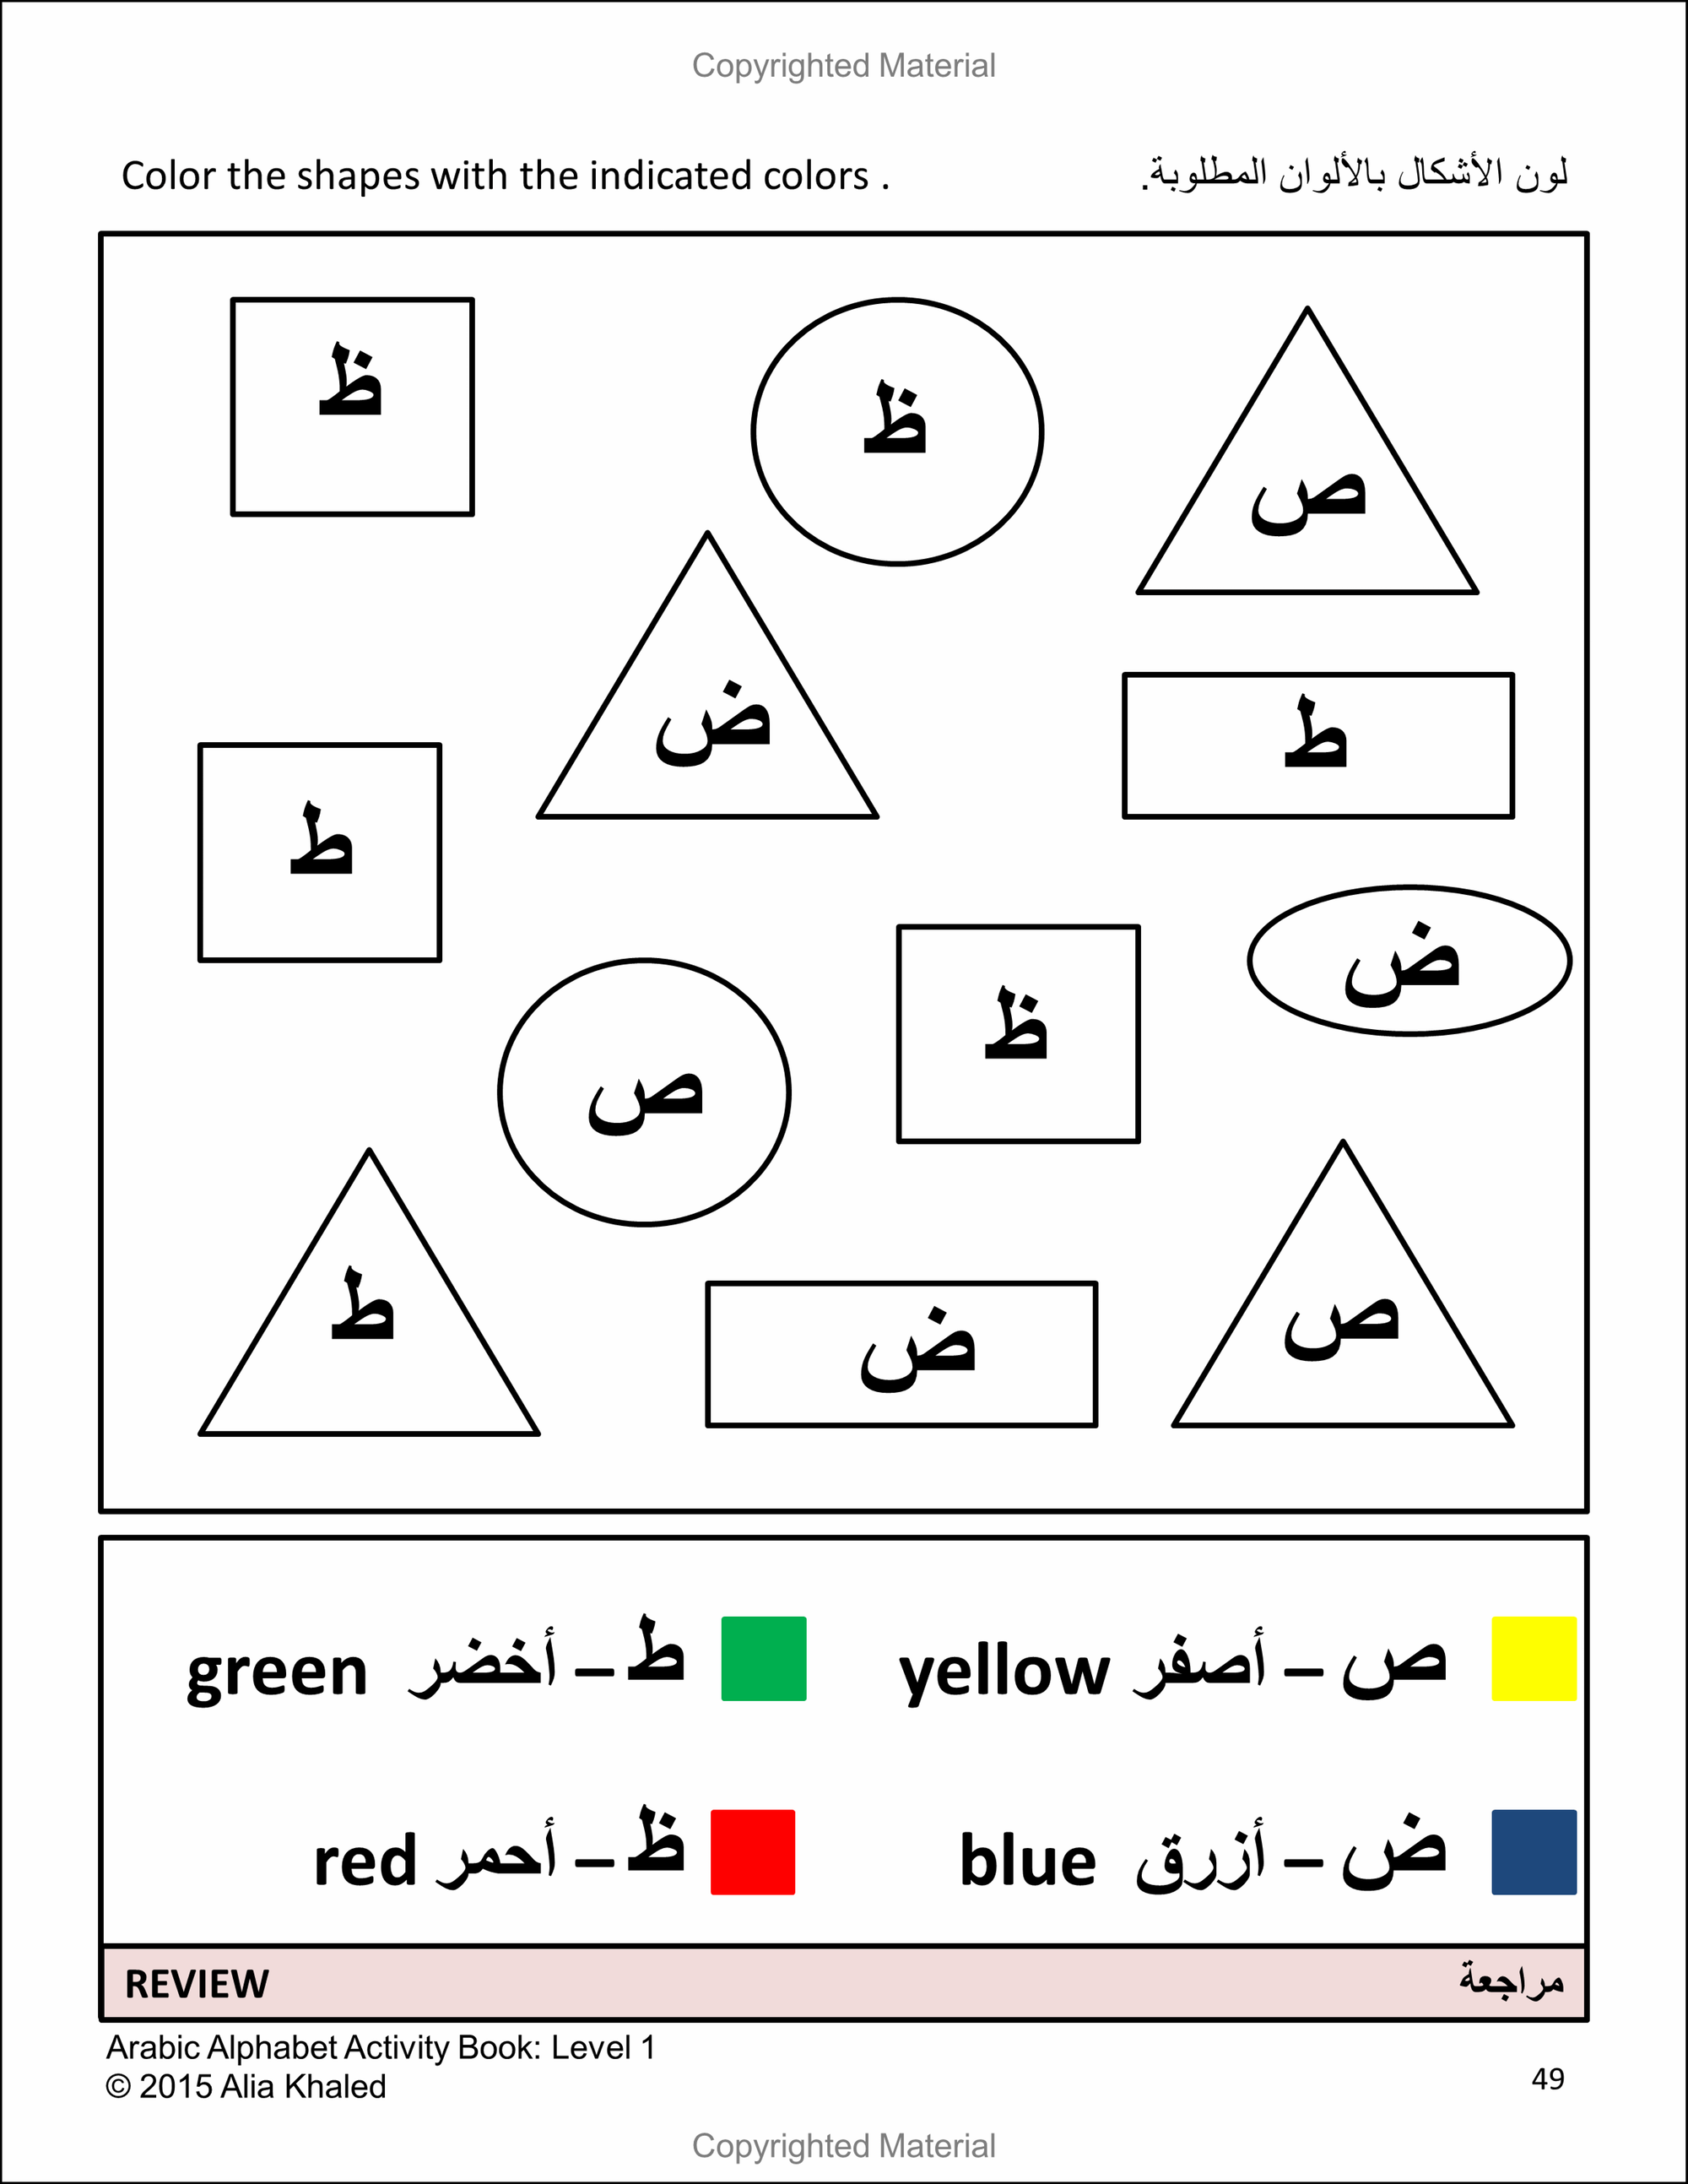 Learn Arabic! Have Fun! - Arabic Alphabet Activity Book: Level 1 ...